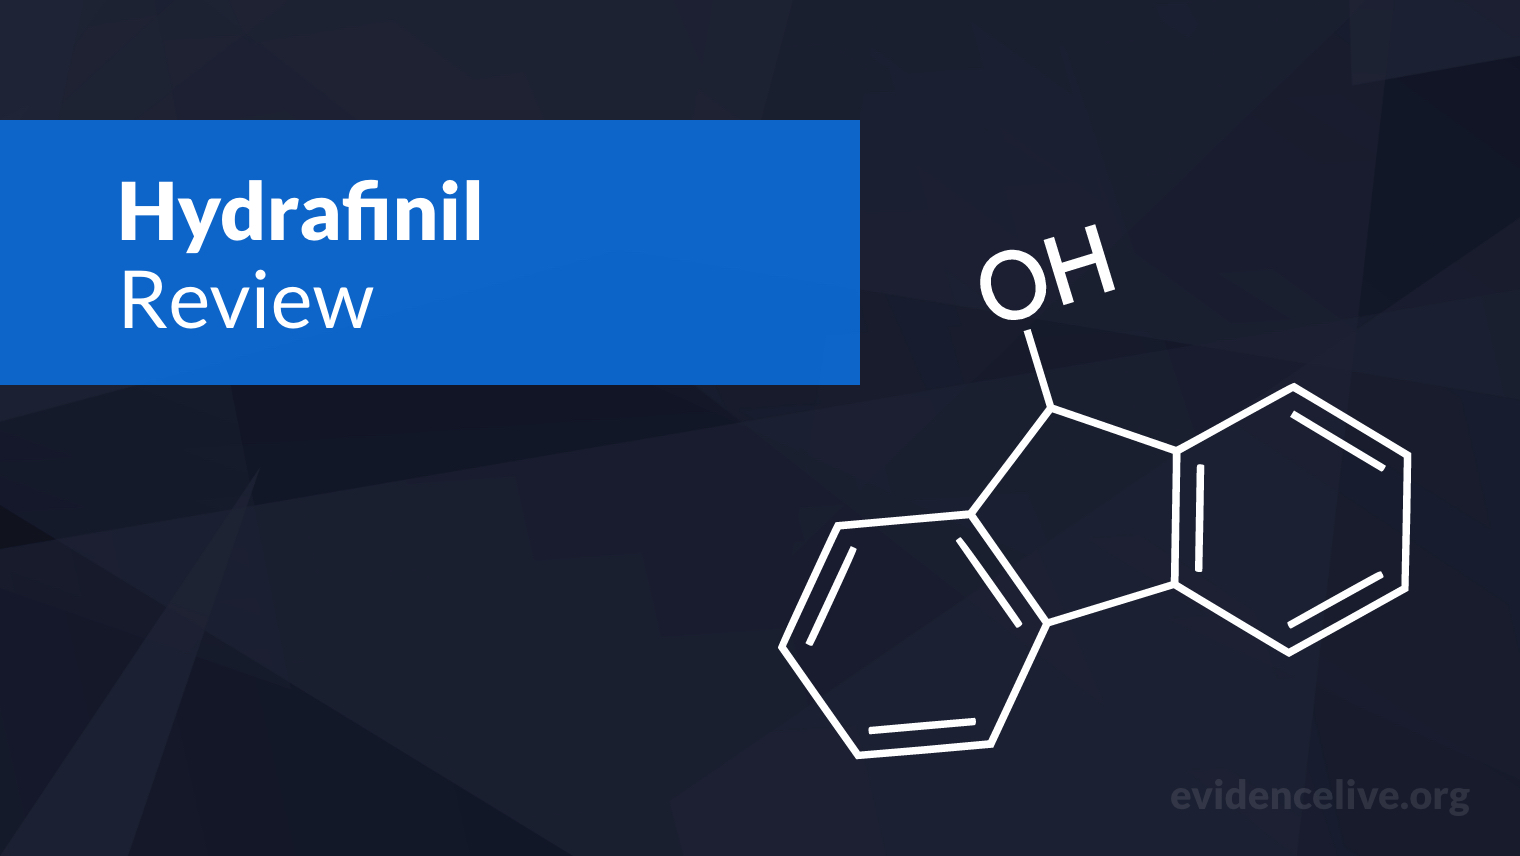 Hydrafinil: Benefits, Uses, Dosage, and Side Effects